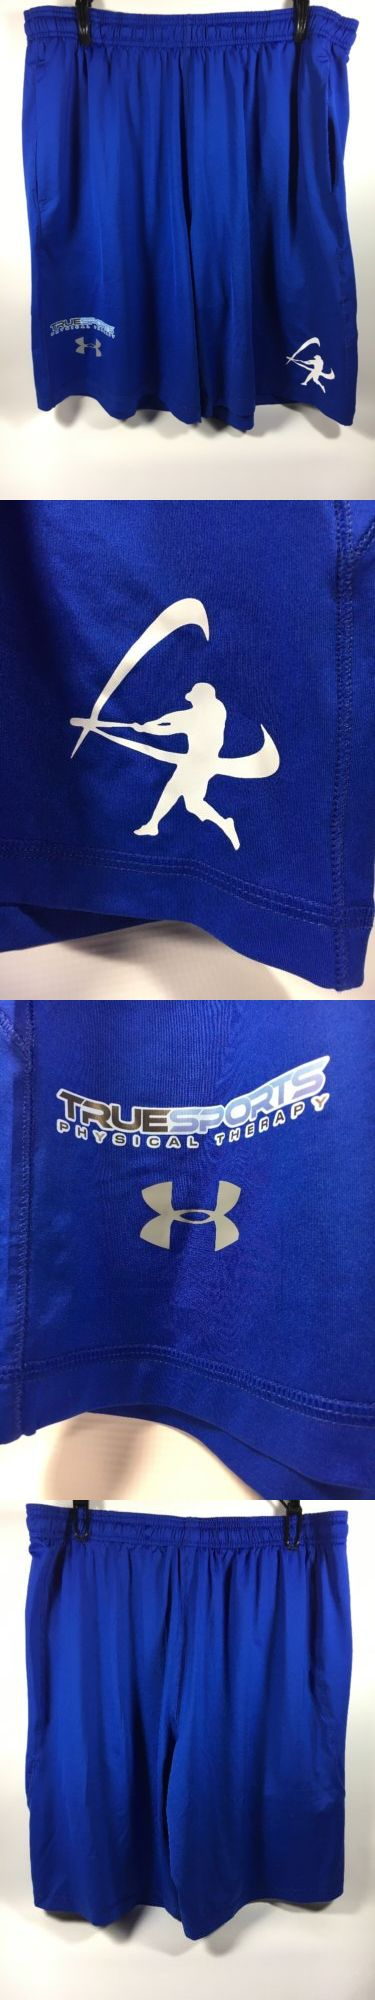 Baseball-Other 204: Team Israel World Baseball Classic Team Issued Shorts Size Xl Nwt -> BUY IT NOW ONLY: $49.99 on eBay!